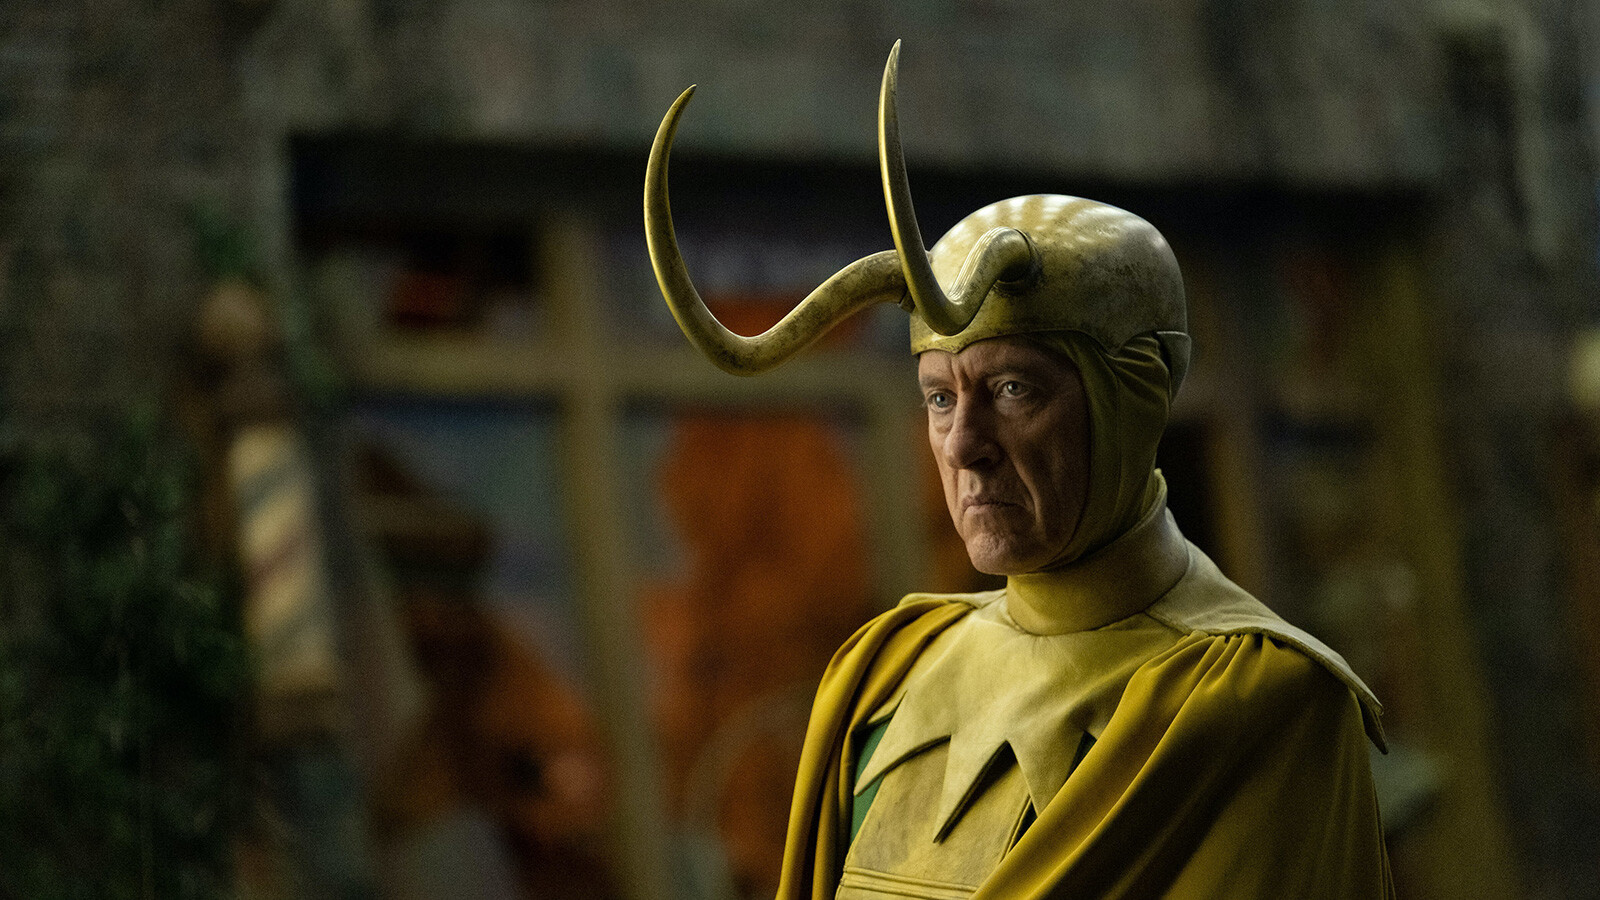 'Loki' is again up to its time-killing tricks in the fifth episode